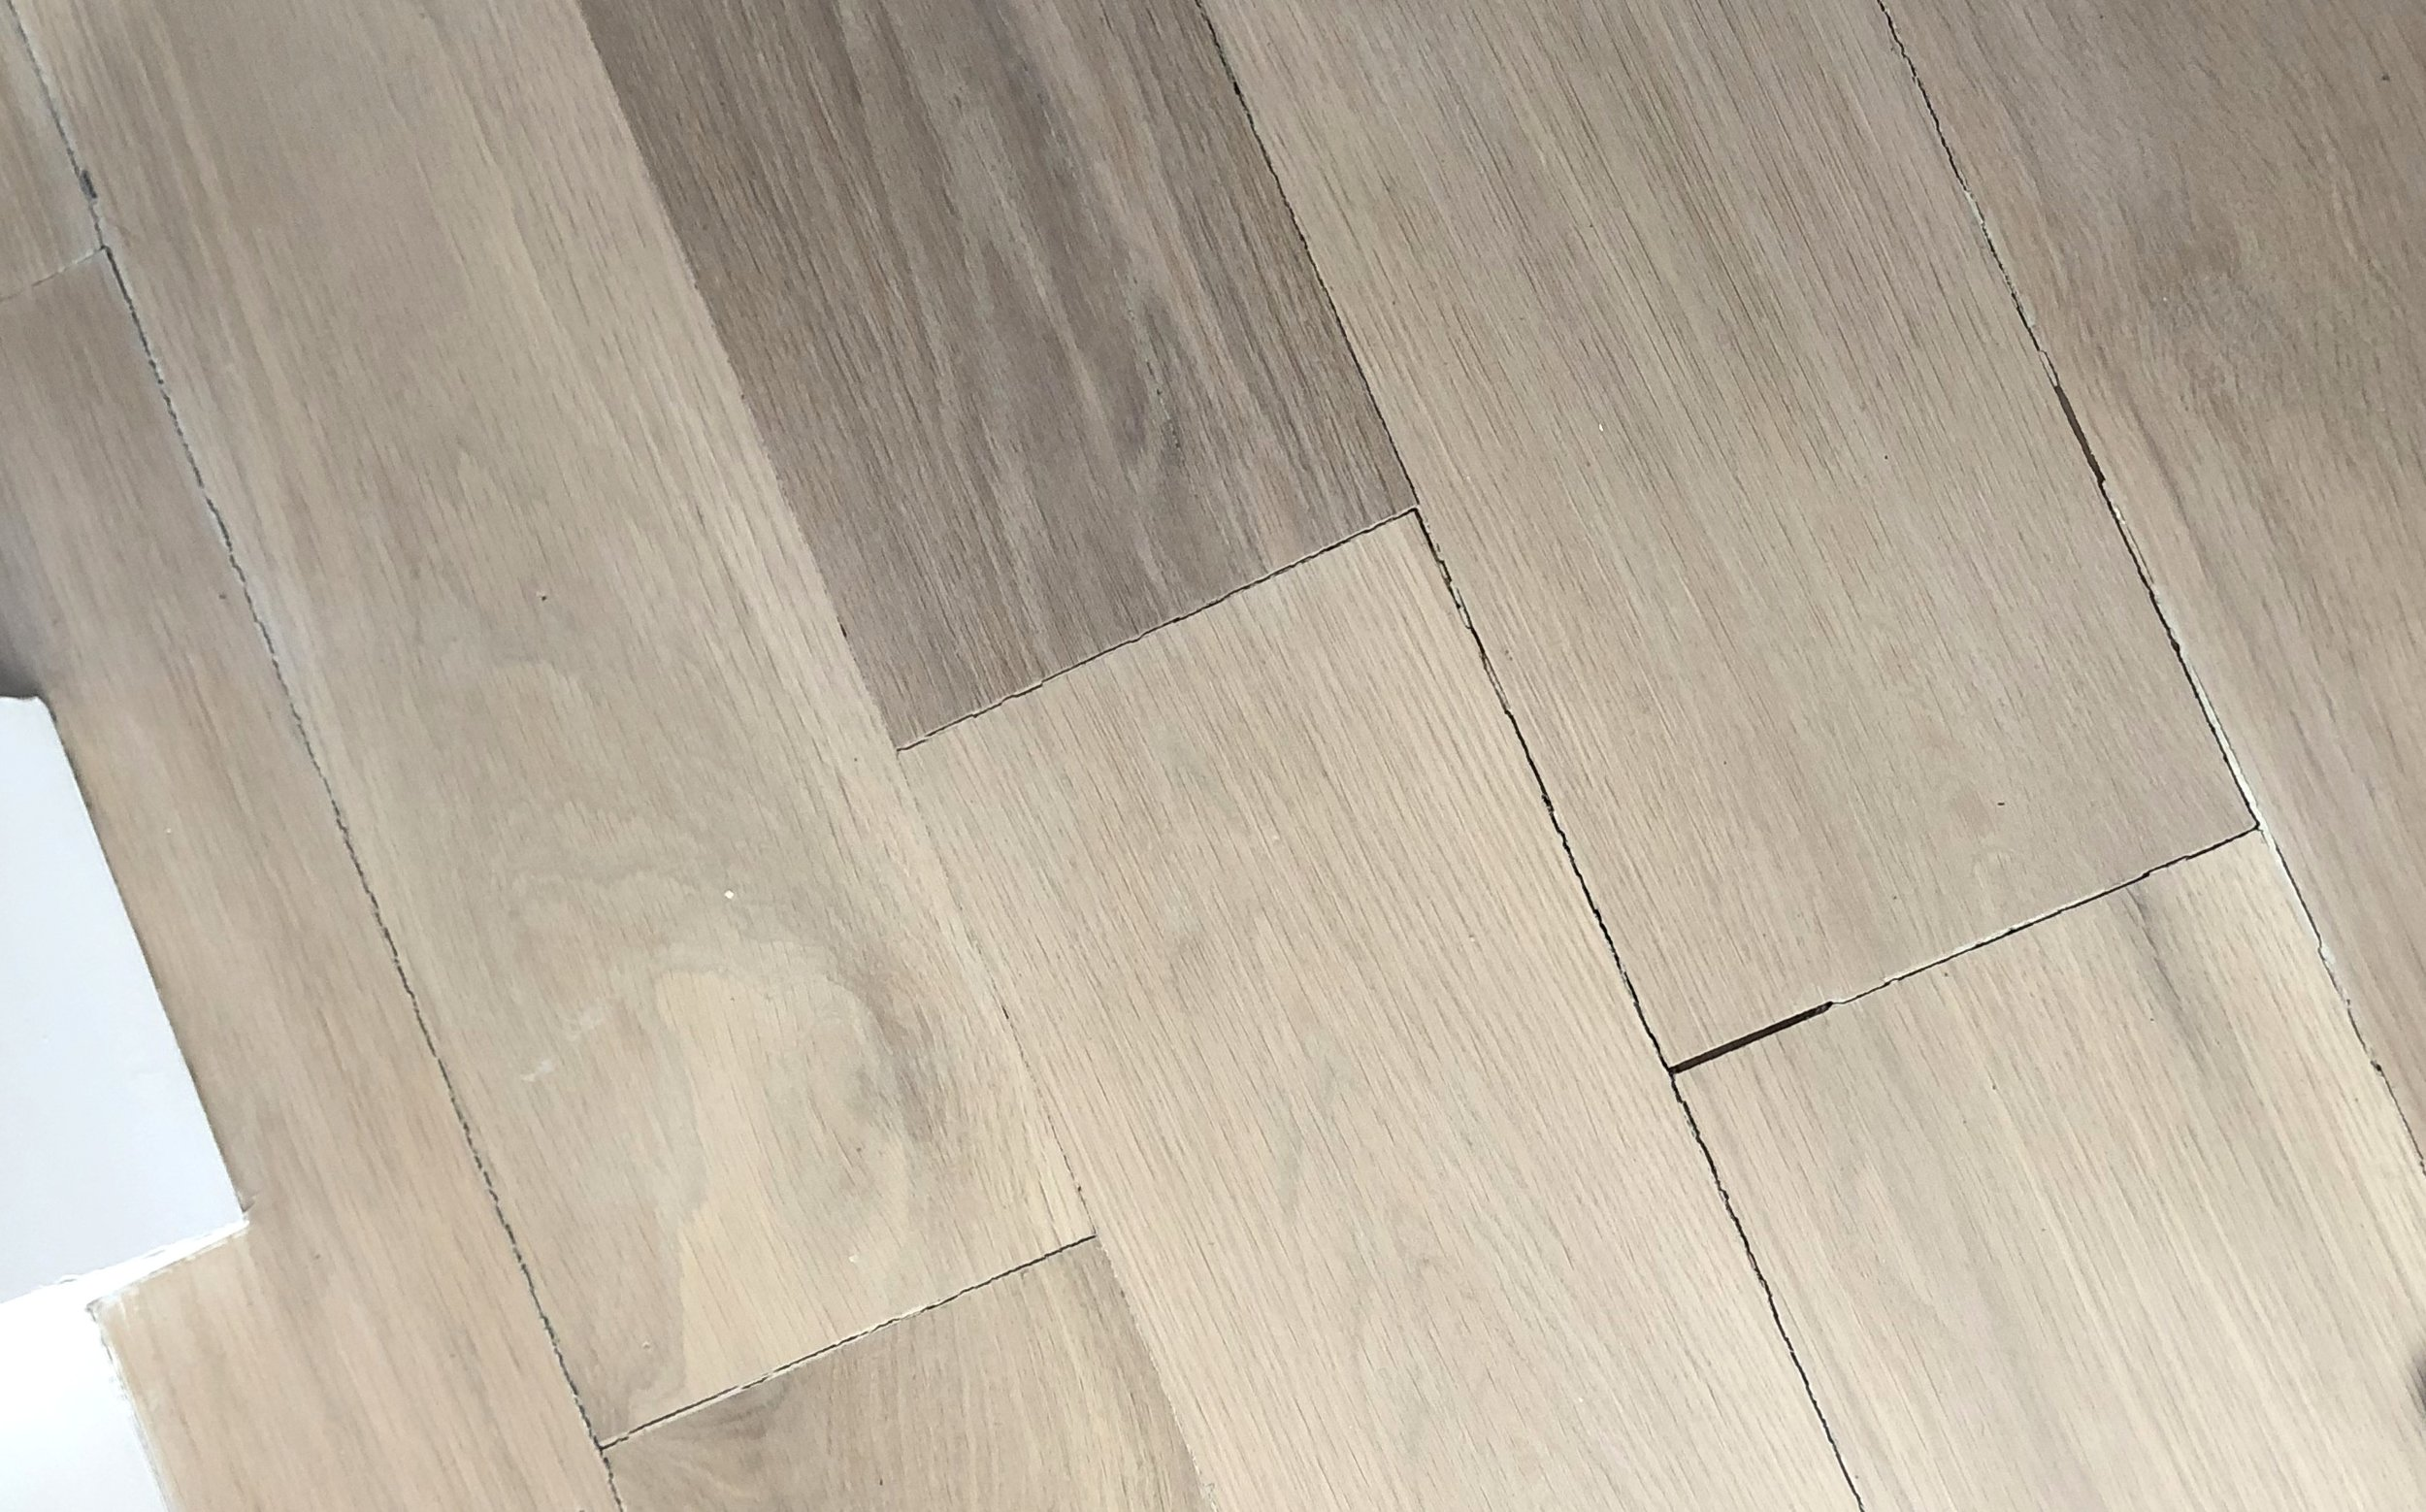 Here you can see wide plank White Oak flooring that had the gaps filled with wood filler (not by our team)…now the wood filler appears cracked and jagged in the gaps, which in my opinion looks worse than just a gap.